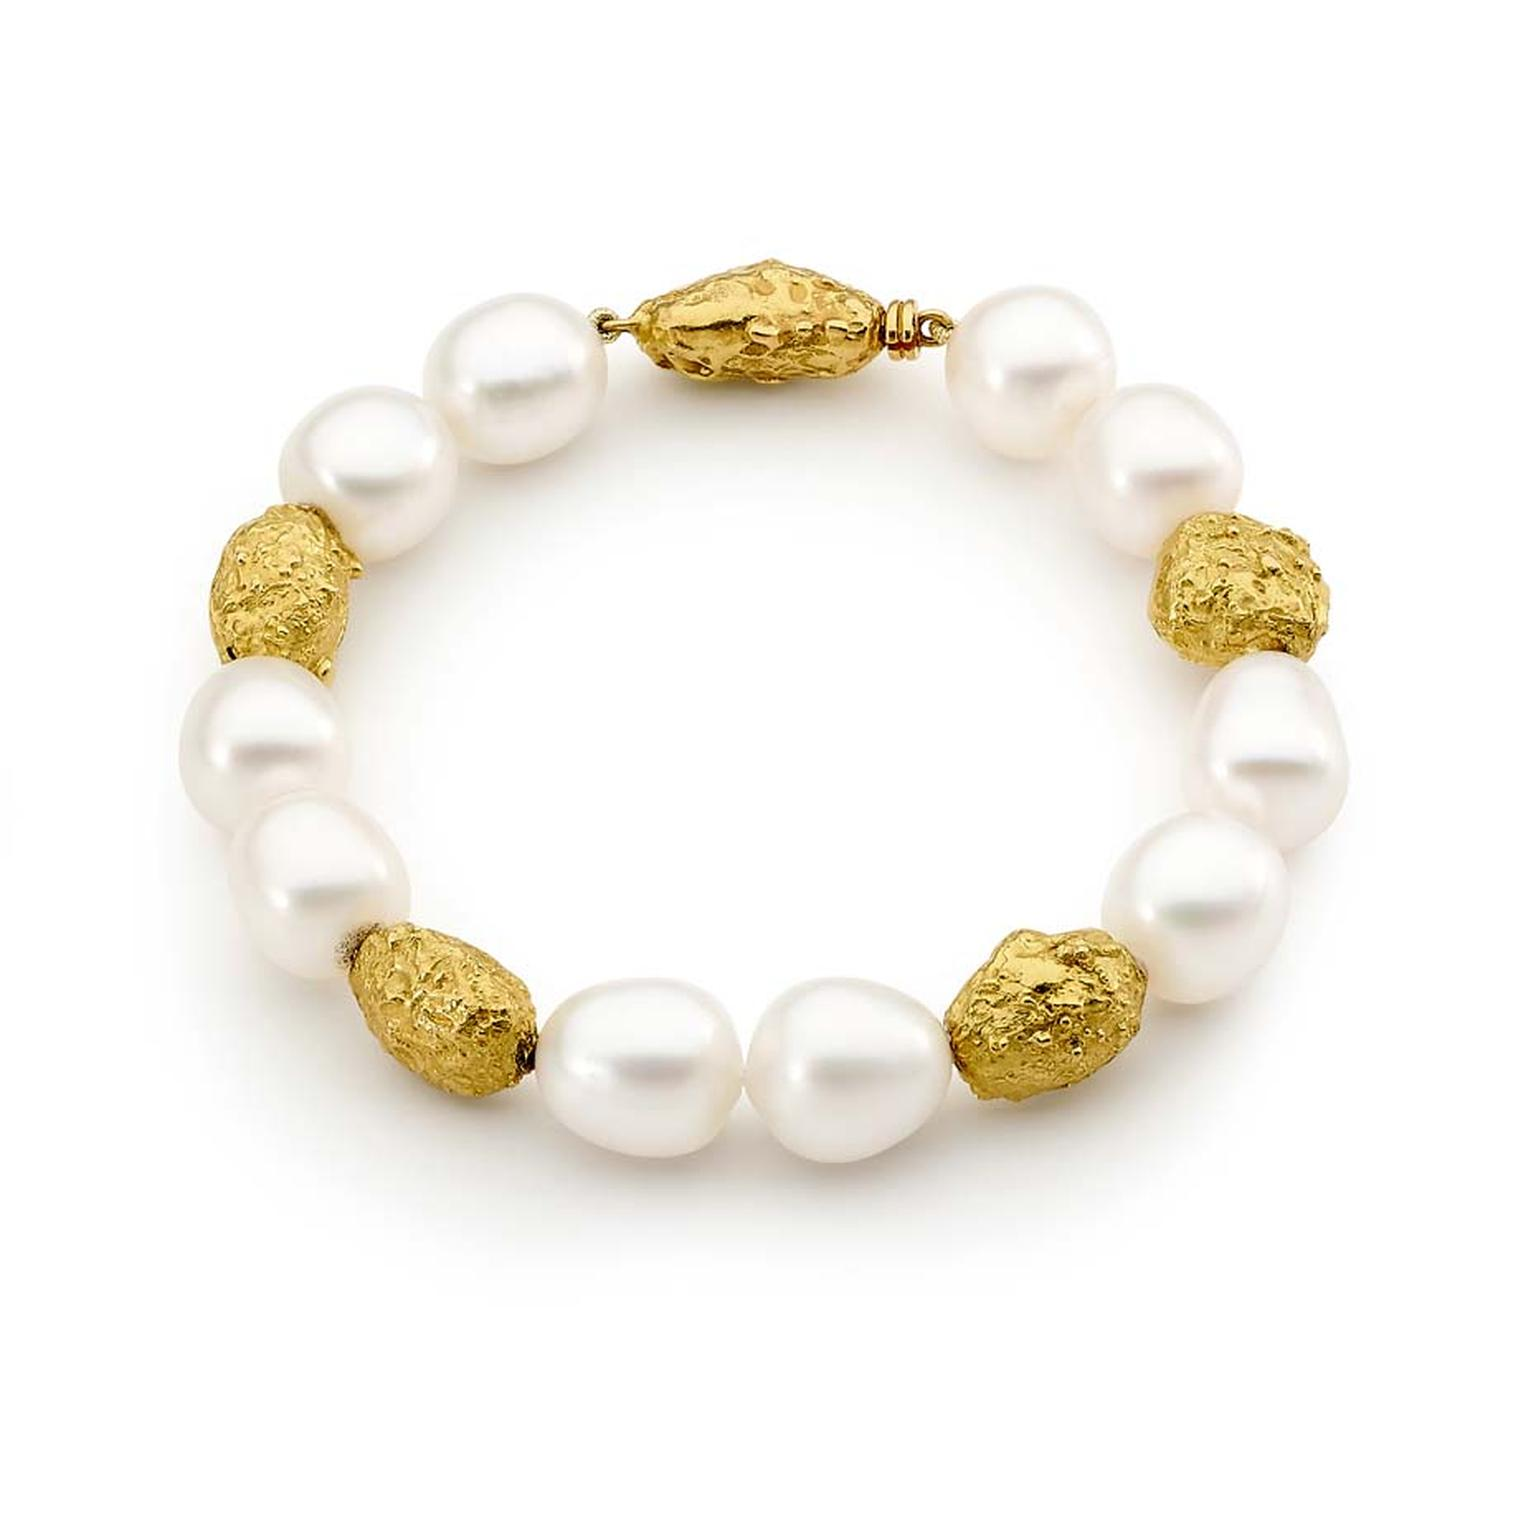 Australian Pearls_Linneys_yellow gold Australian South Sea pearl bracelet 8,500.jpg